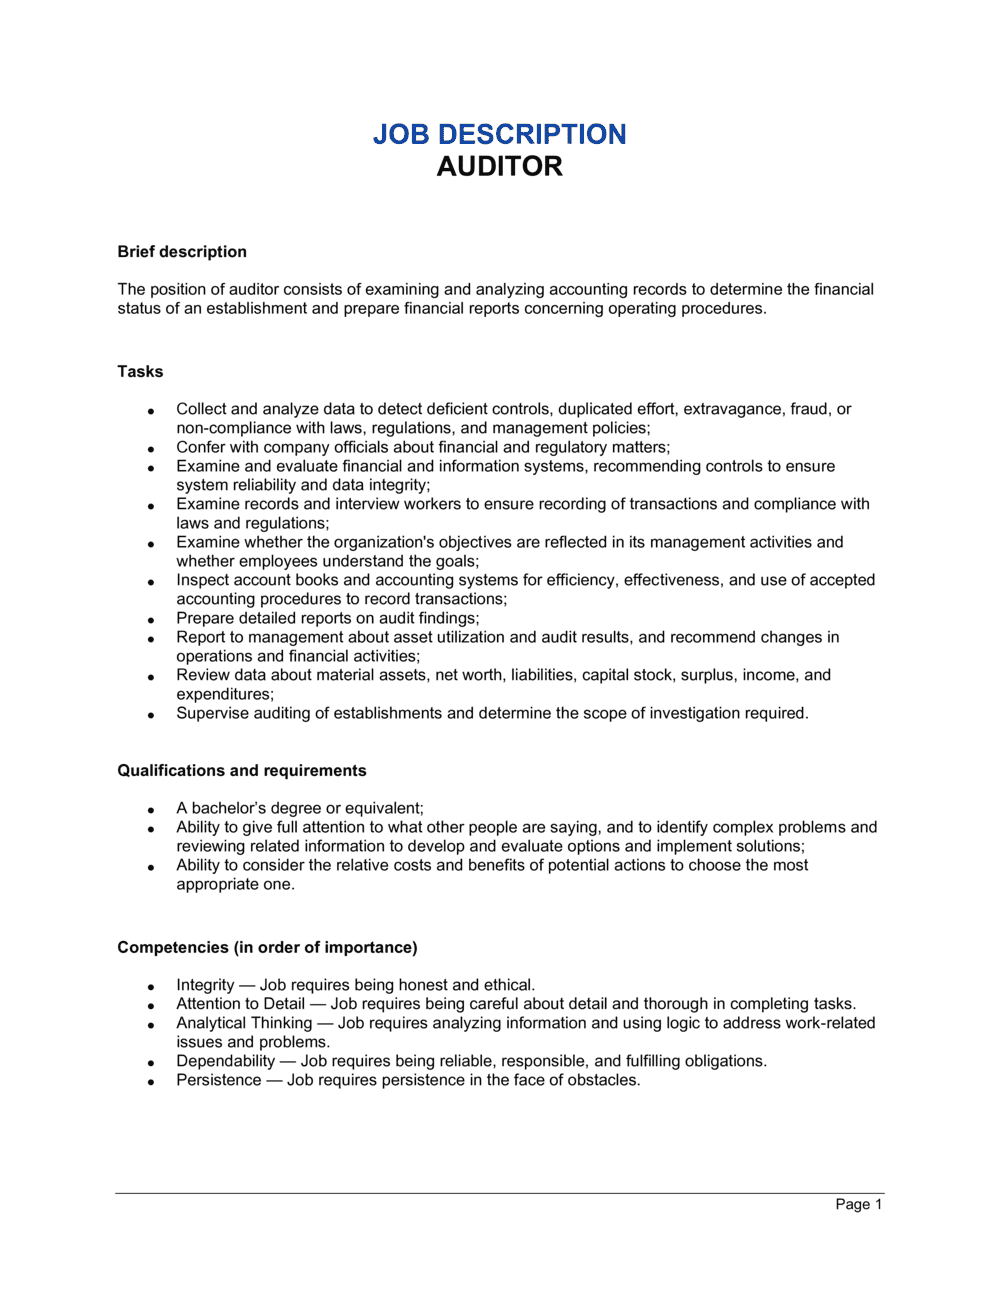 Business-in-a-Box's Auditor Job Description Template